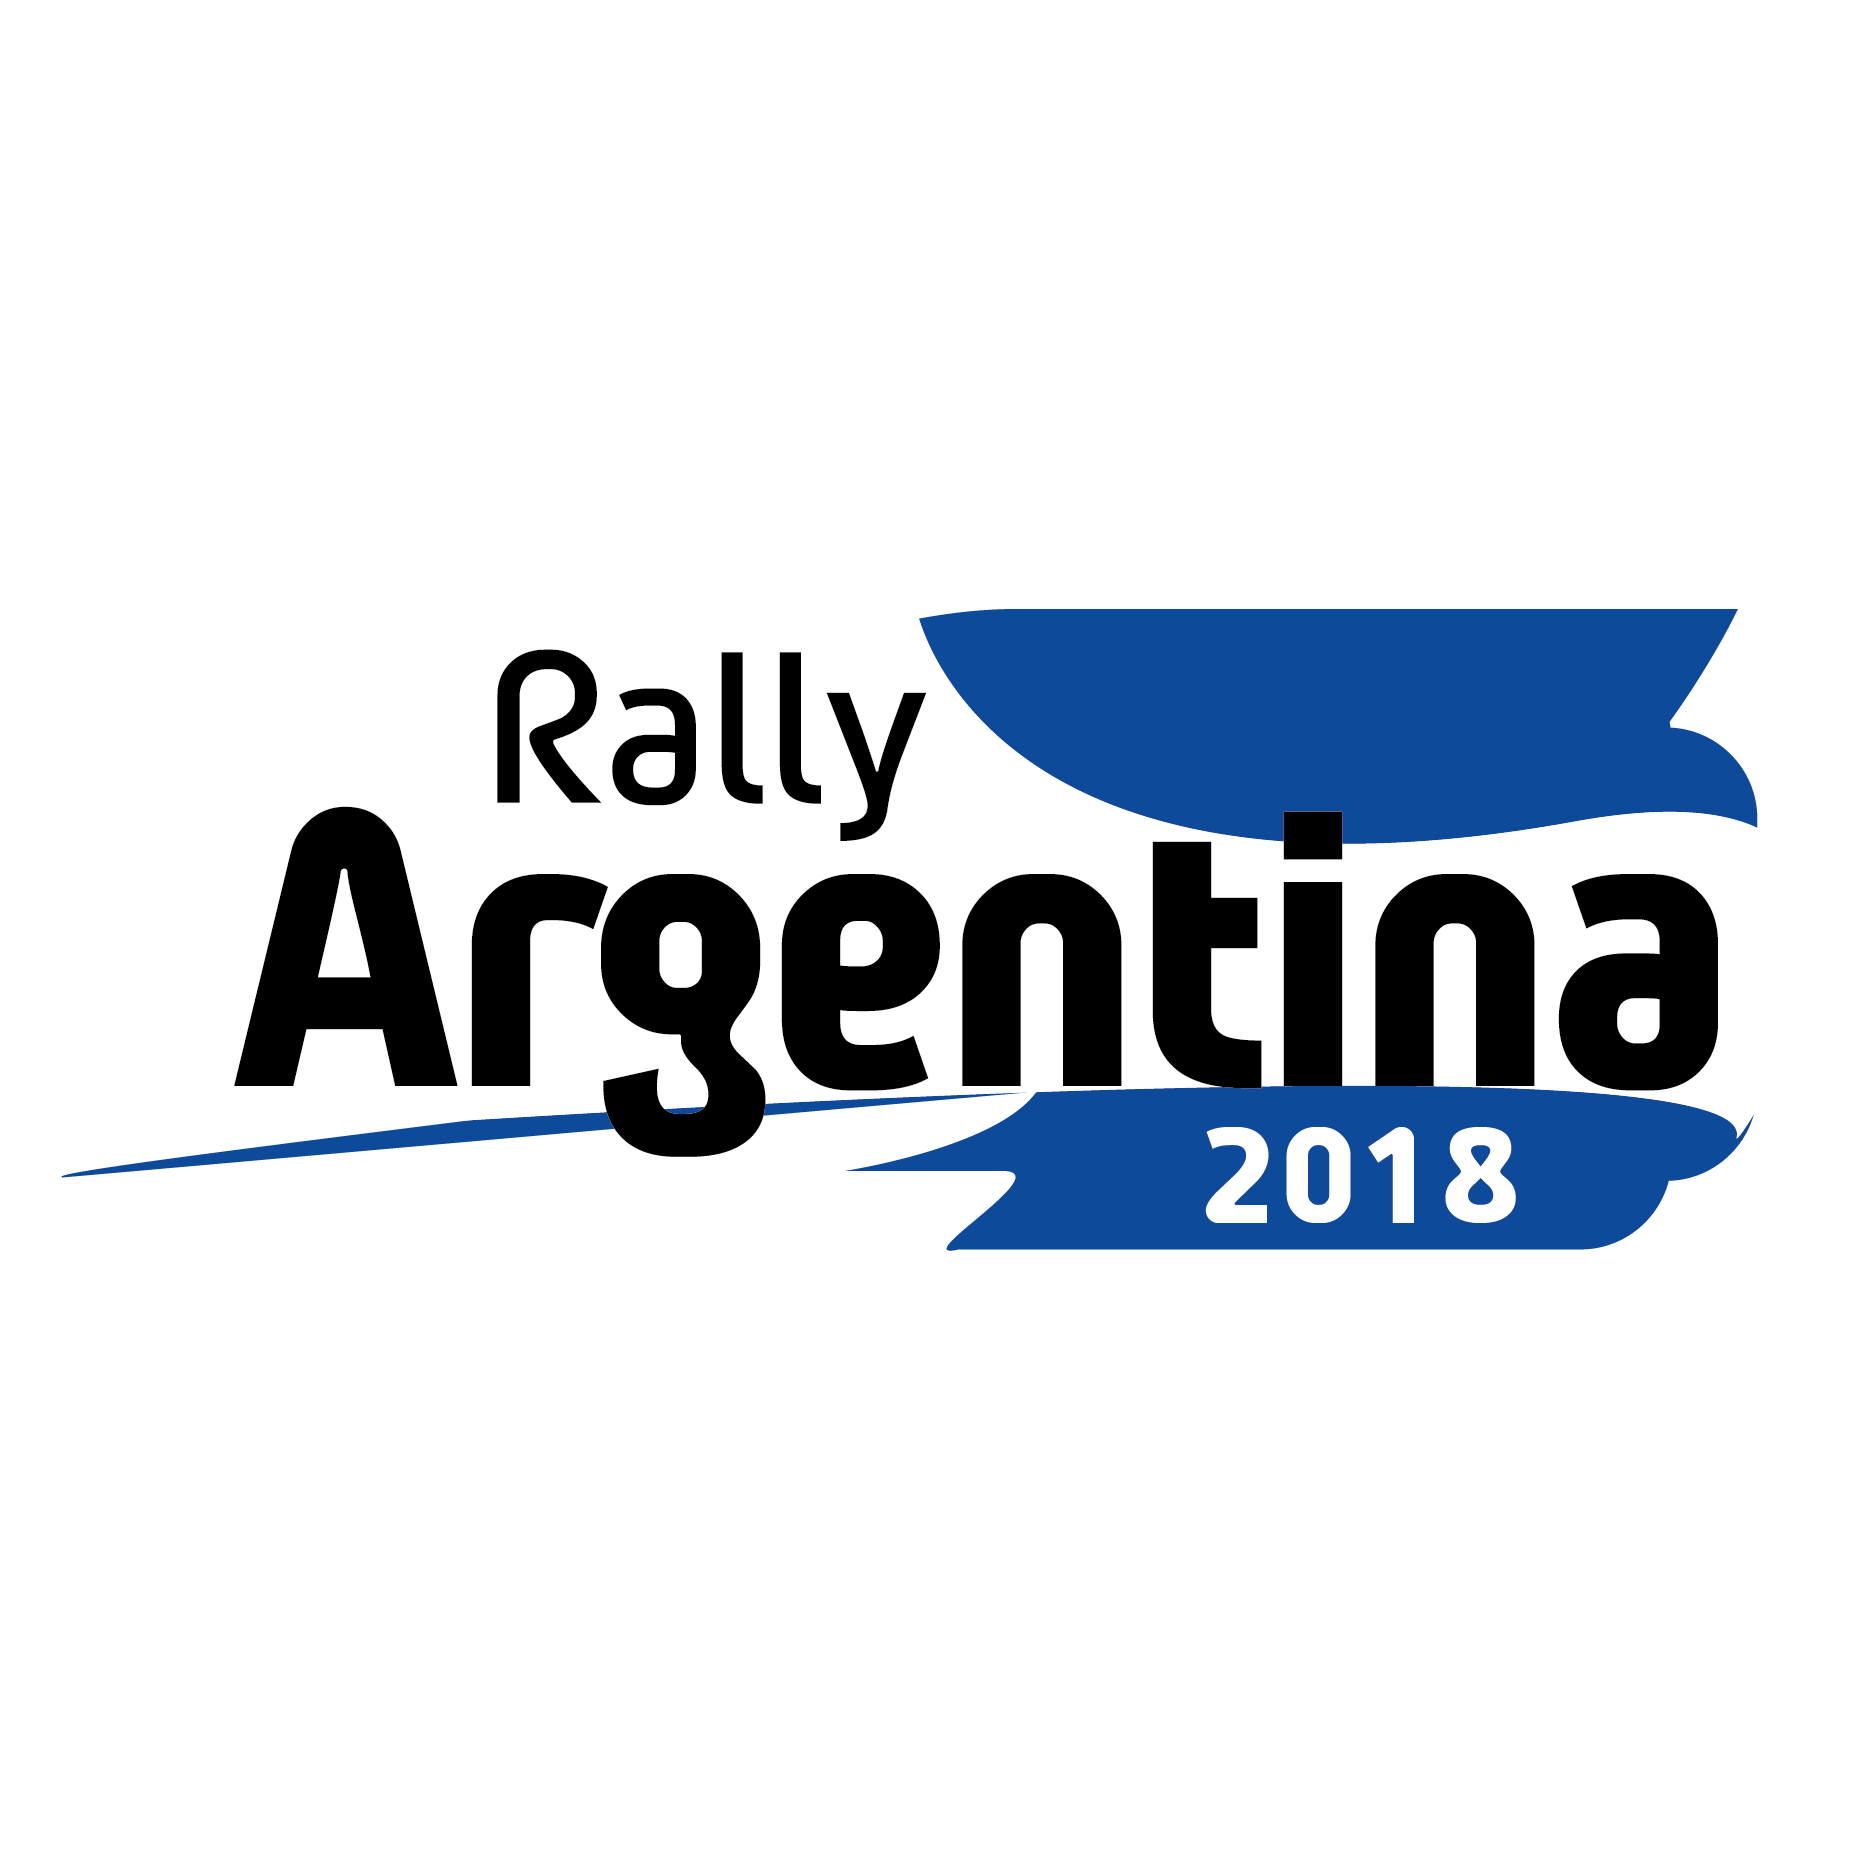 2018 World Rally Championship - Rally Argentina